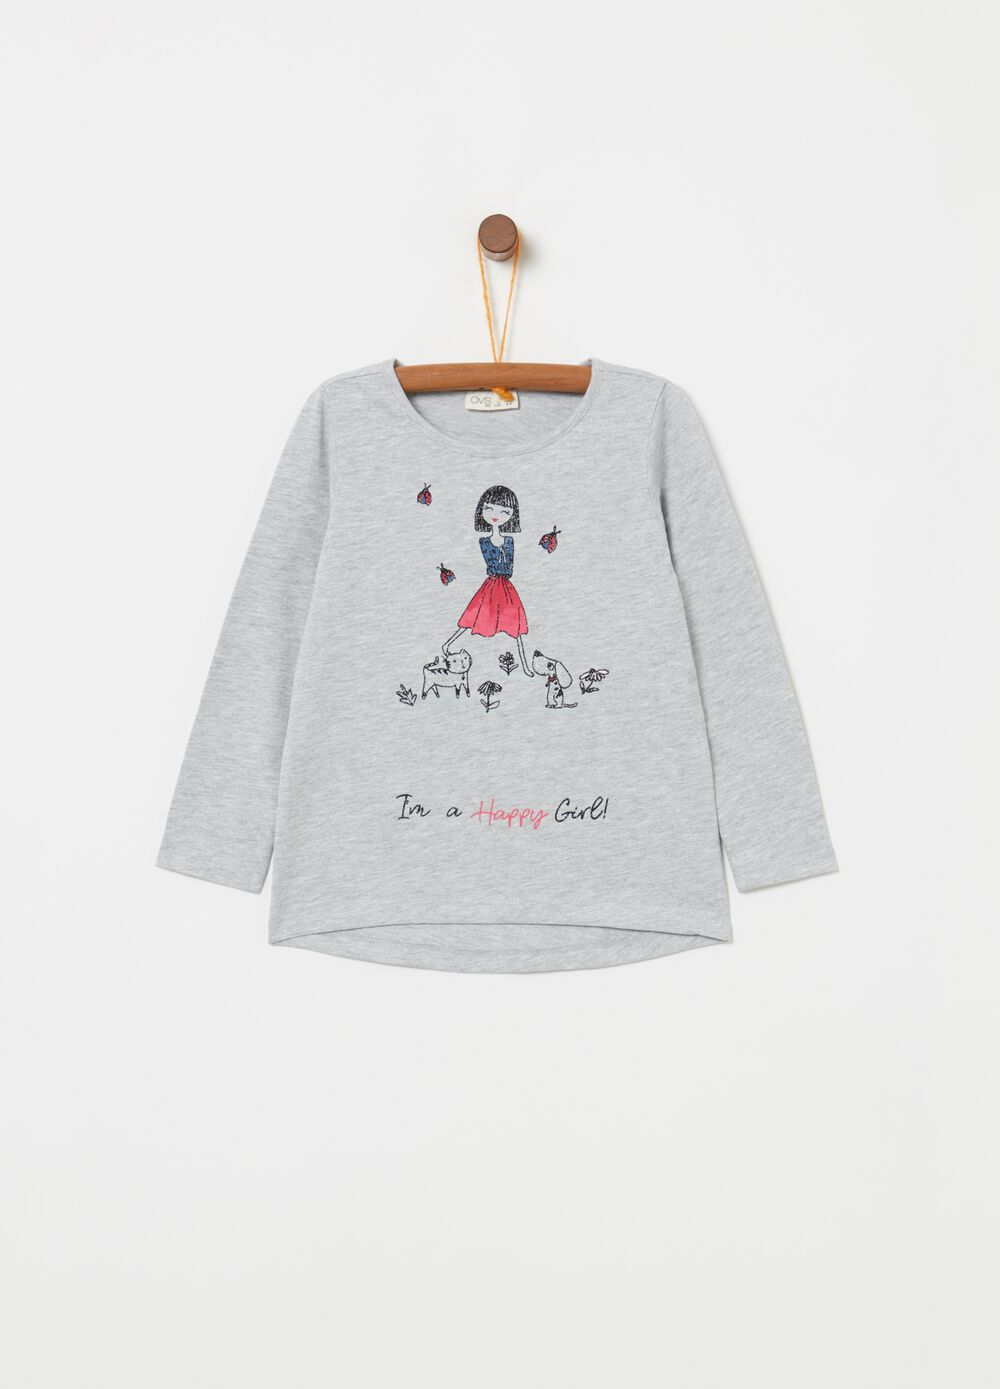 Printed T-shirt with glitter baby girl and puppies